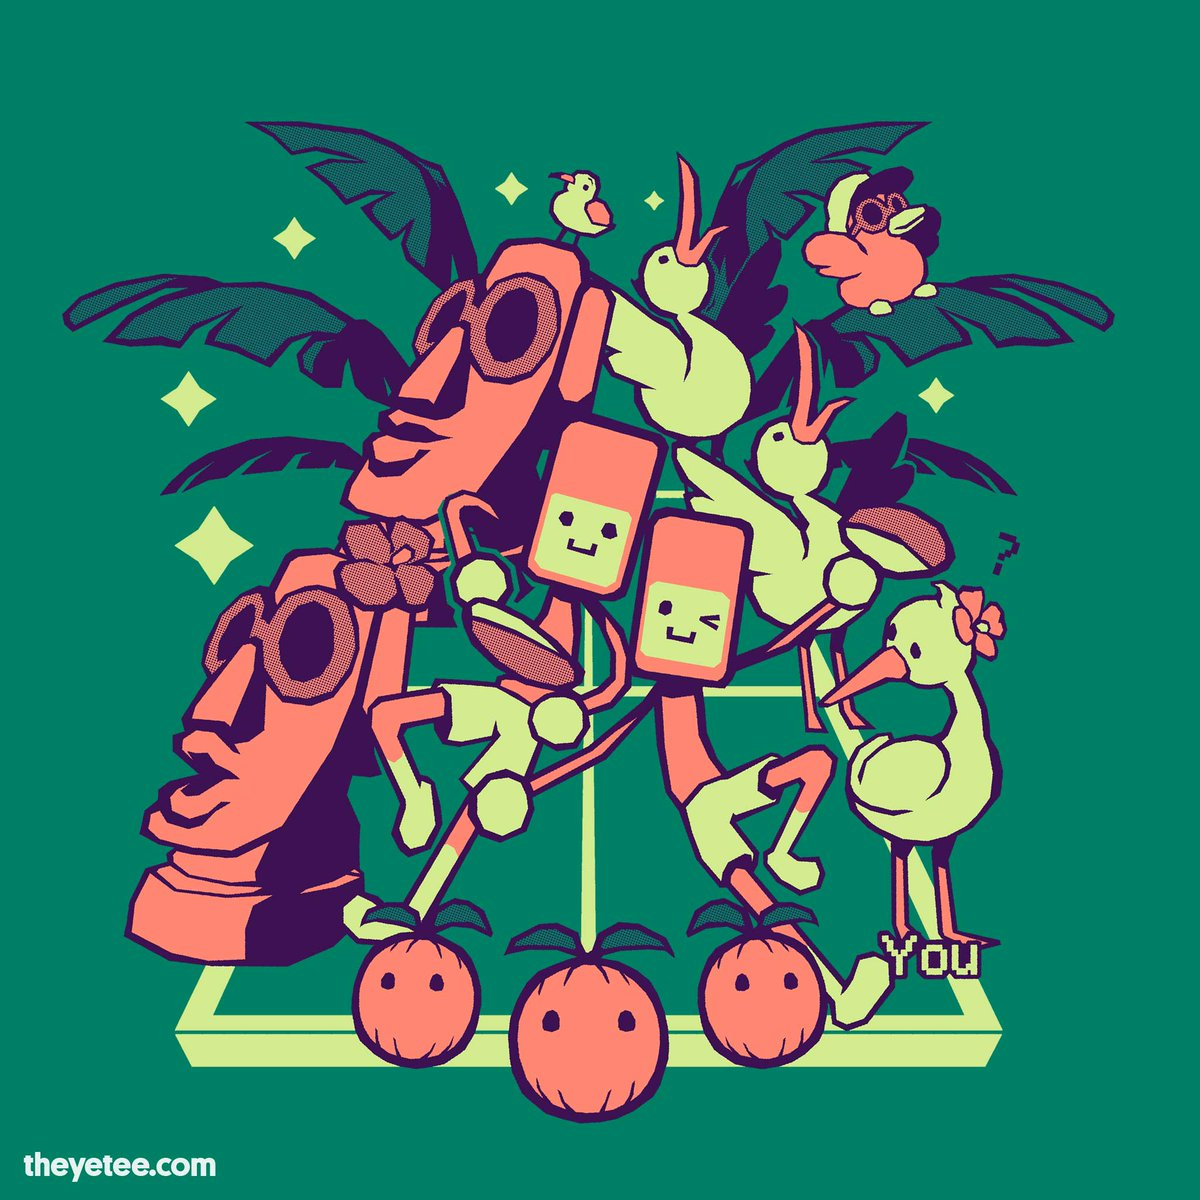 The Yetee On Twitter It S The Perfect Time To Hit Those Summer Beats And Perfect Your Tank Top Rhythm Designed By Mikoto Tsuki For Sweatyfest Https T Co Zd8uexq3ta Https T Co Tye485aozi My very first #spyro shirt, second piece of spro clothing! twitter